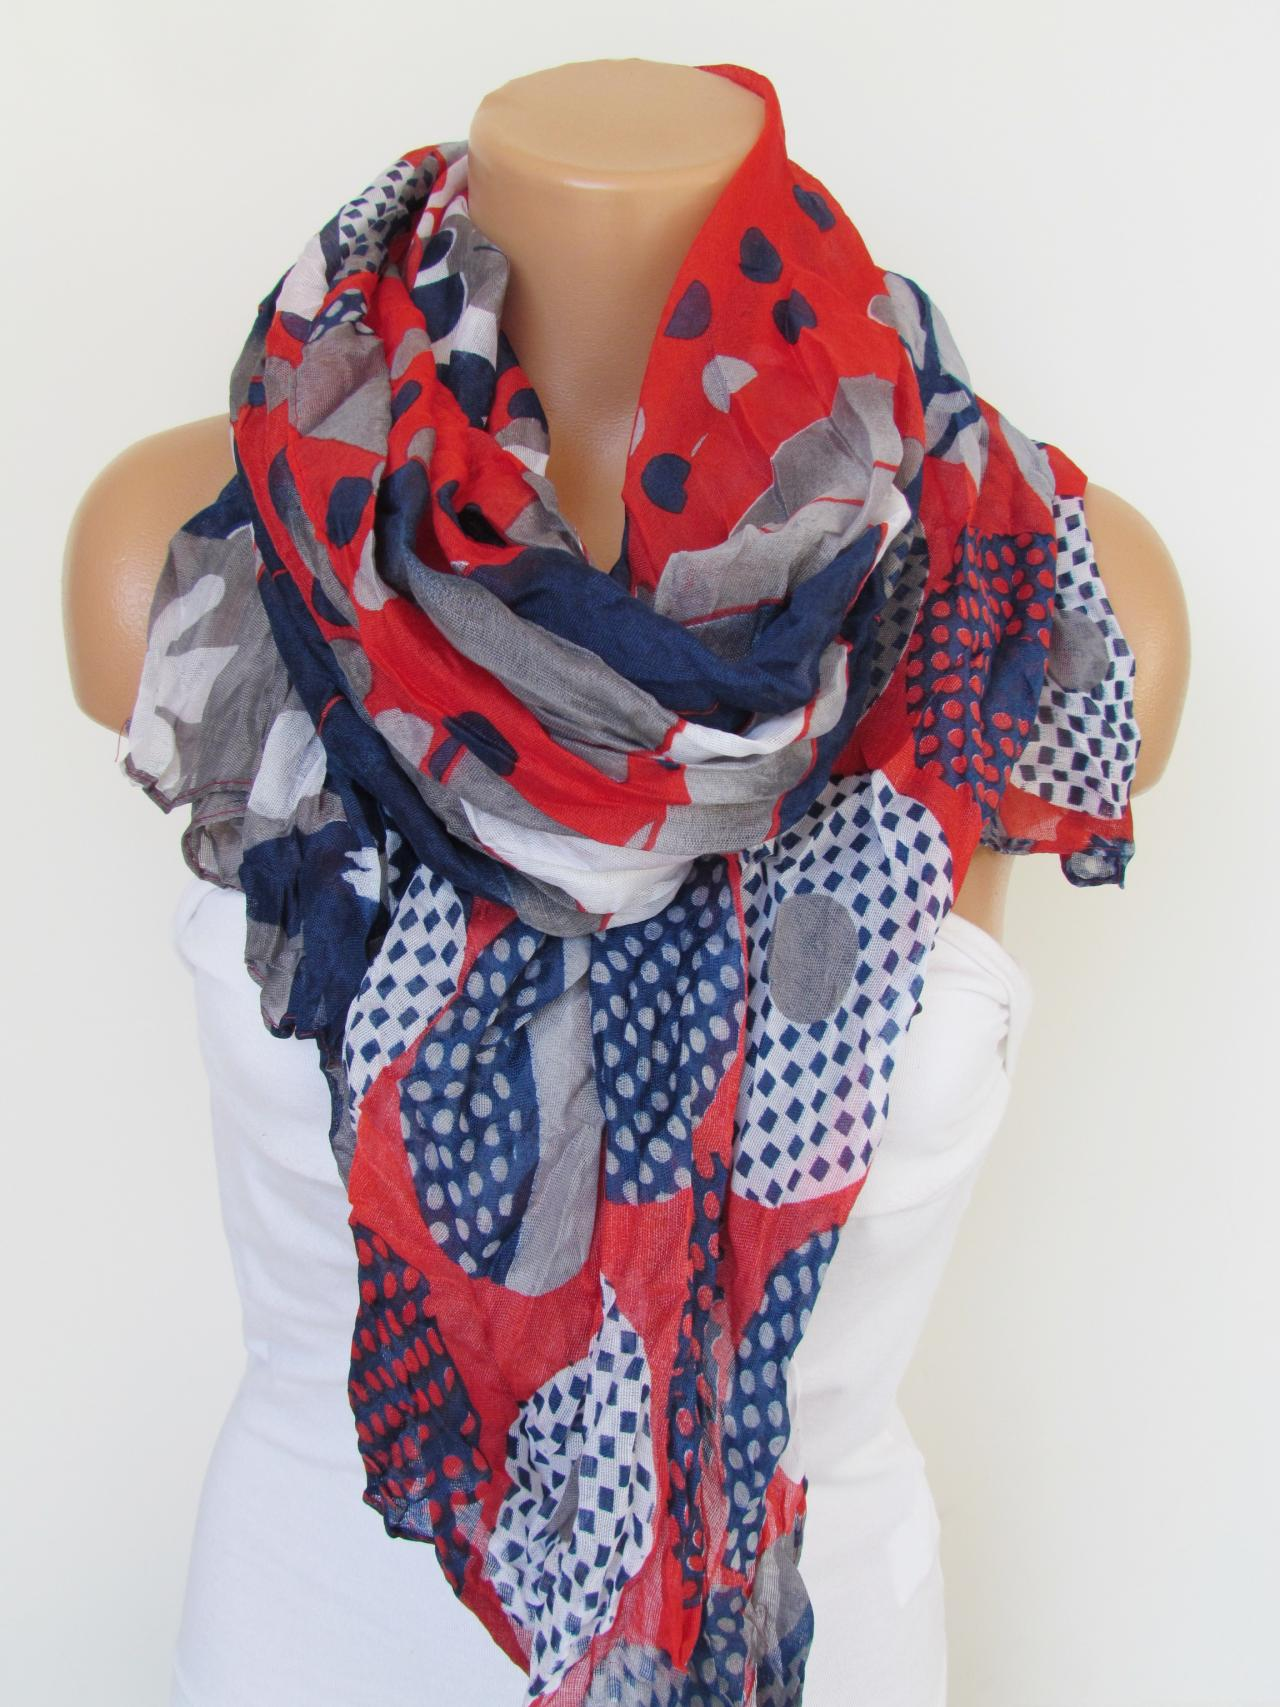 Red Navy Blue and GrayFloral Polka-dot Pattern Scarf Spring Summer Scarf Infinity Scarf Women's Fashion Accessories Trend Holidays Easter Gift Ideas For Her